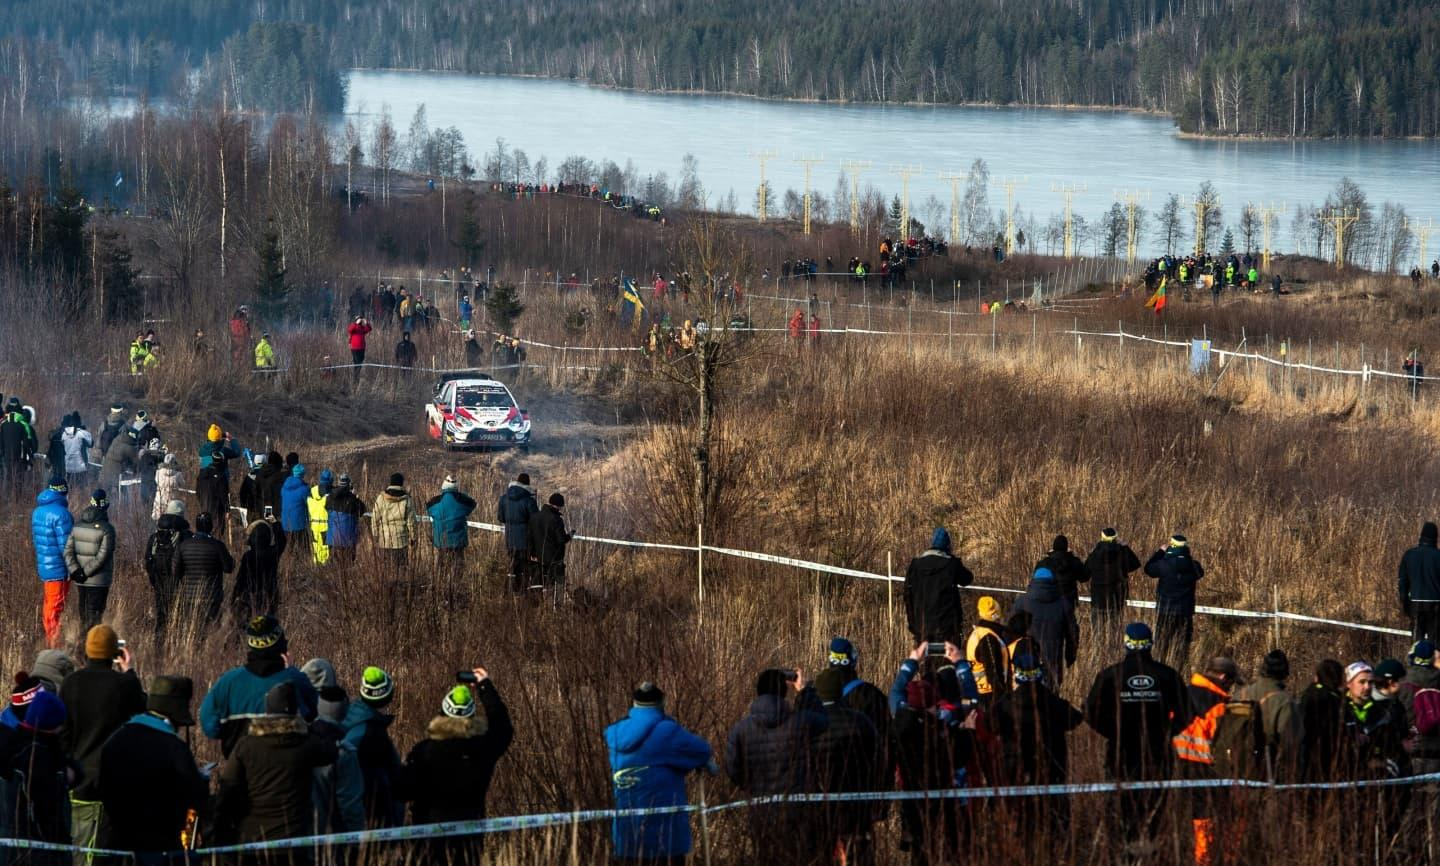 rally-suecia-2020-wrc-red-bull-content-pool-1